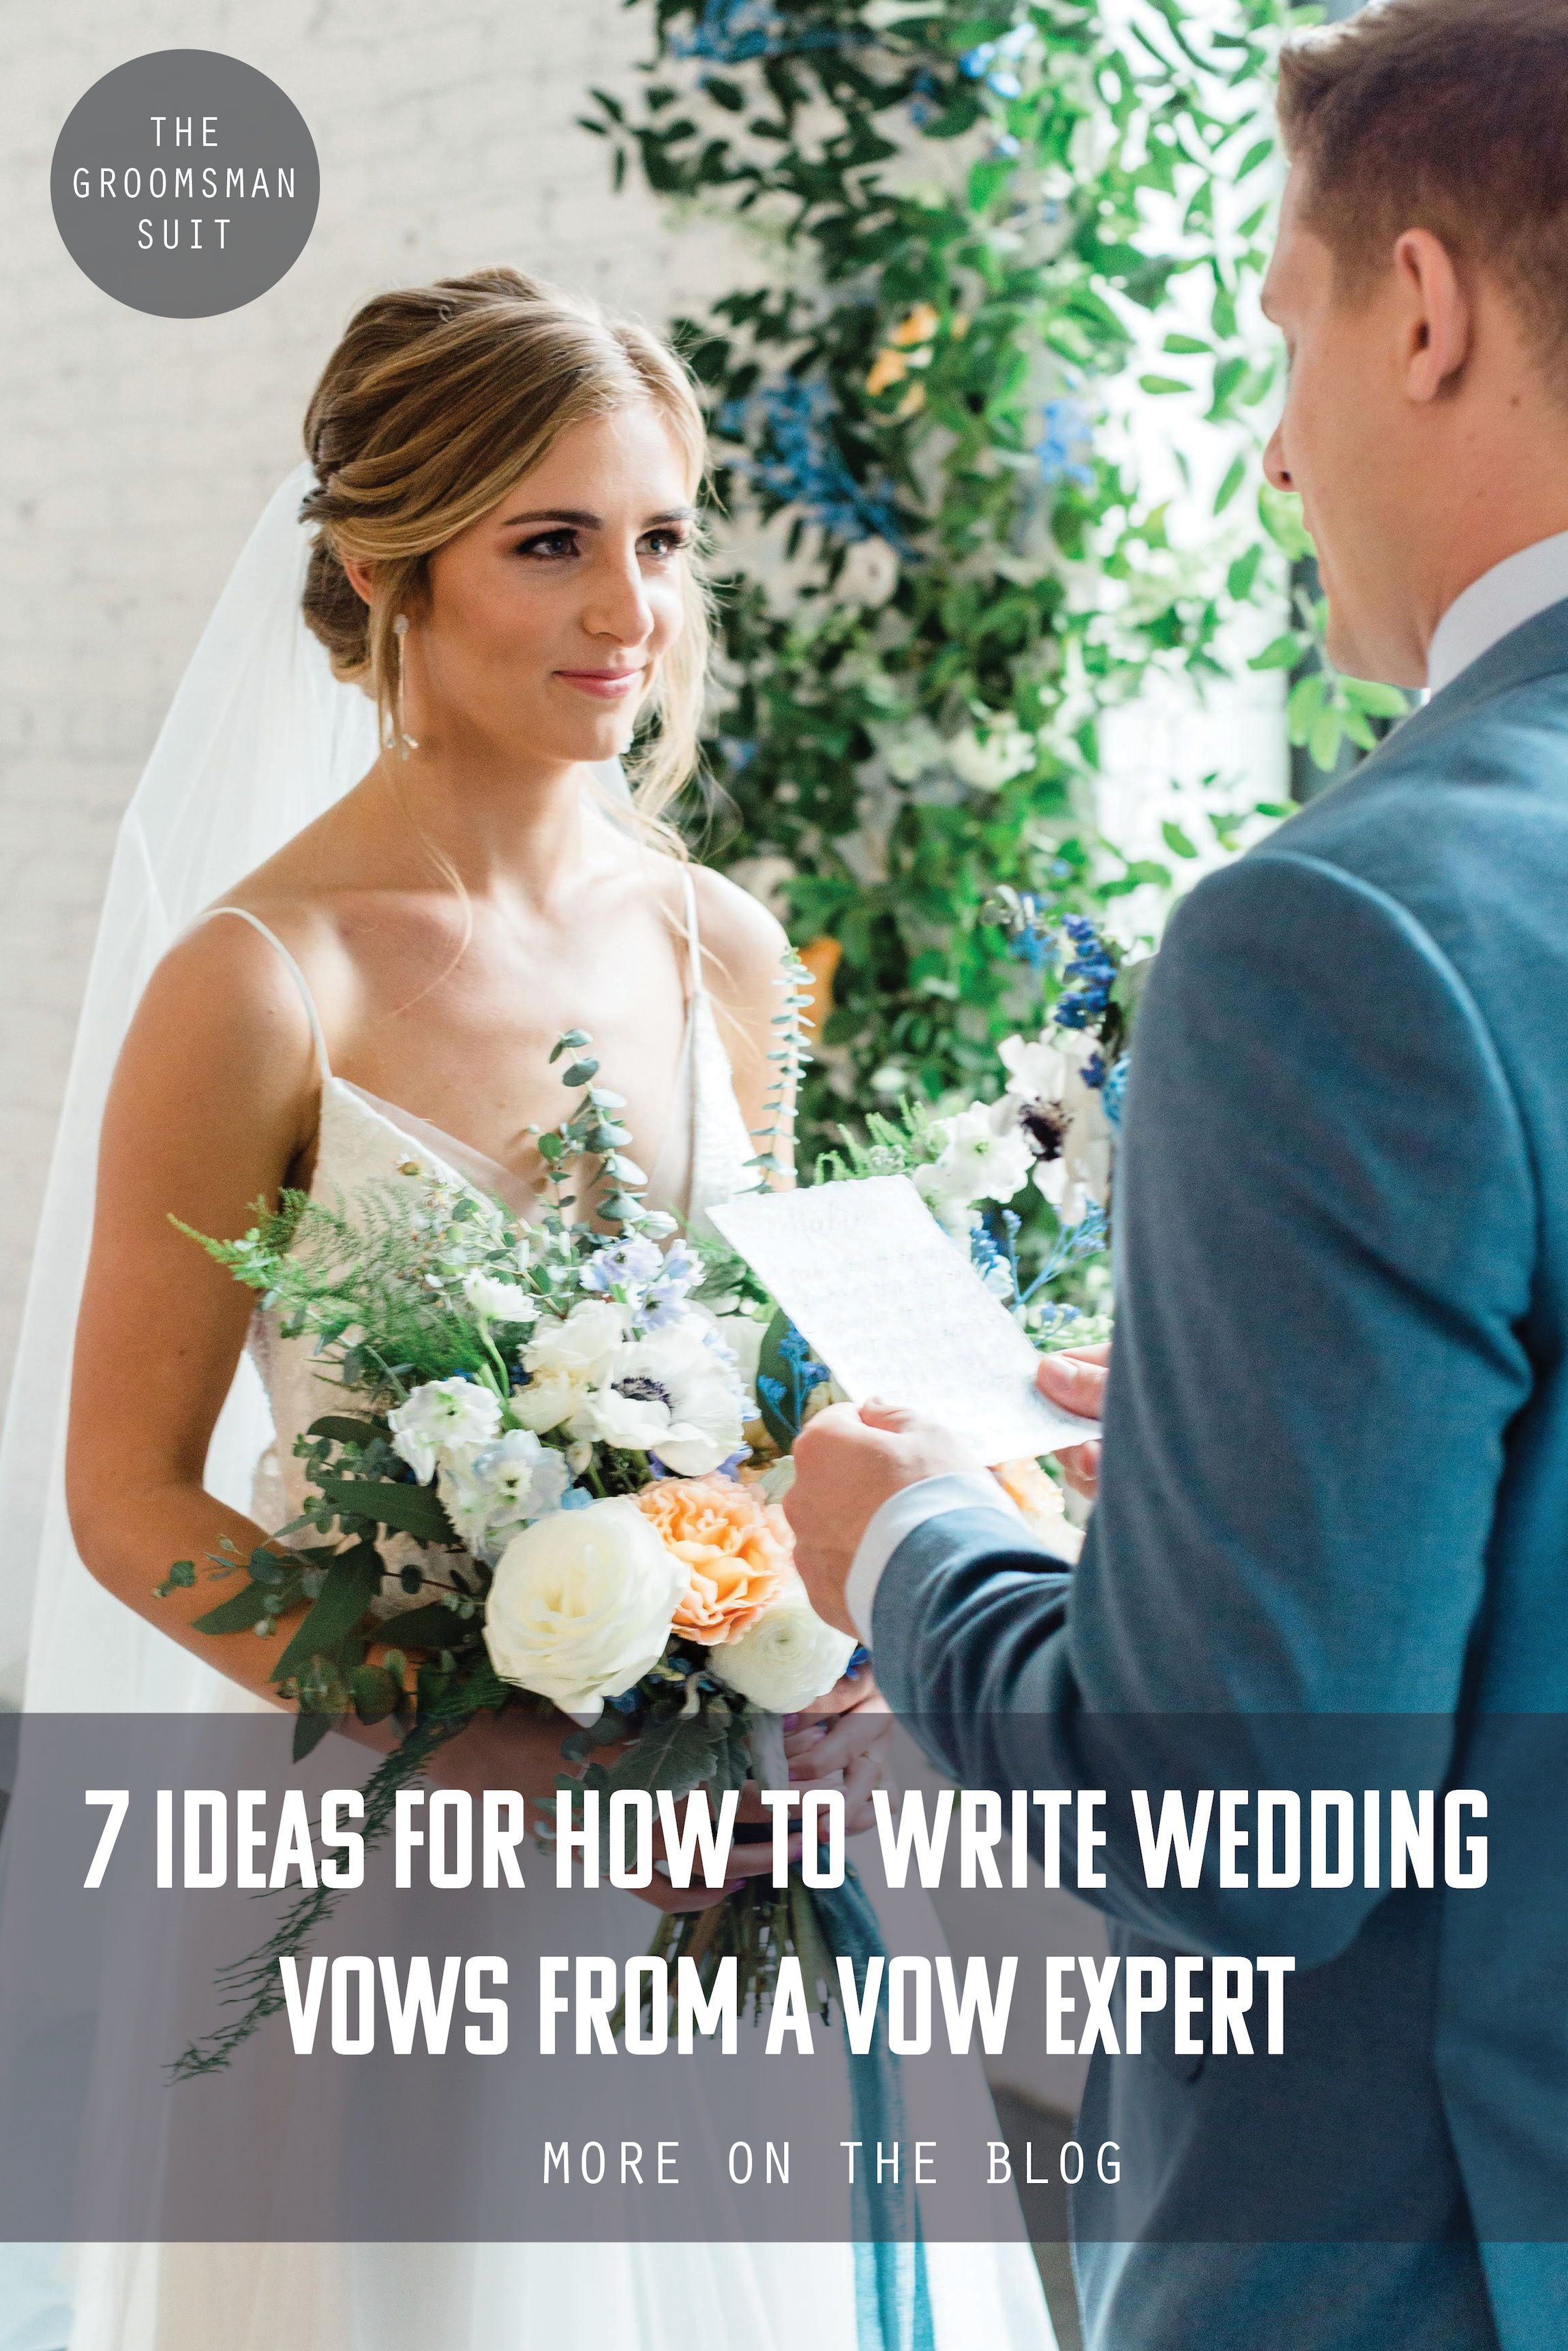 7 Ideas For How To Write Wedding Vows From A Vow Expert In 2020 Wedding Vows Writing Wedding Vows Wedding Planning Advice